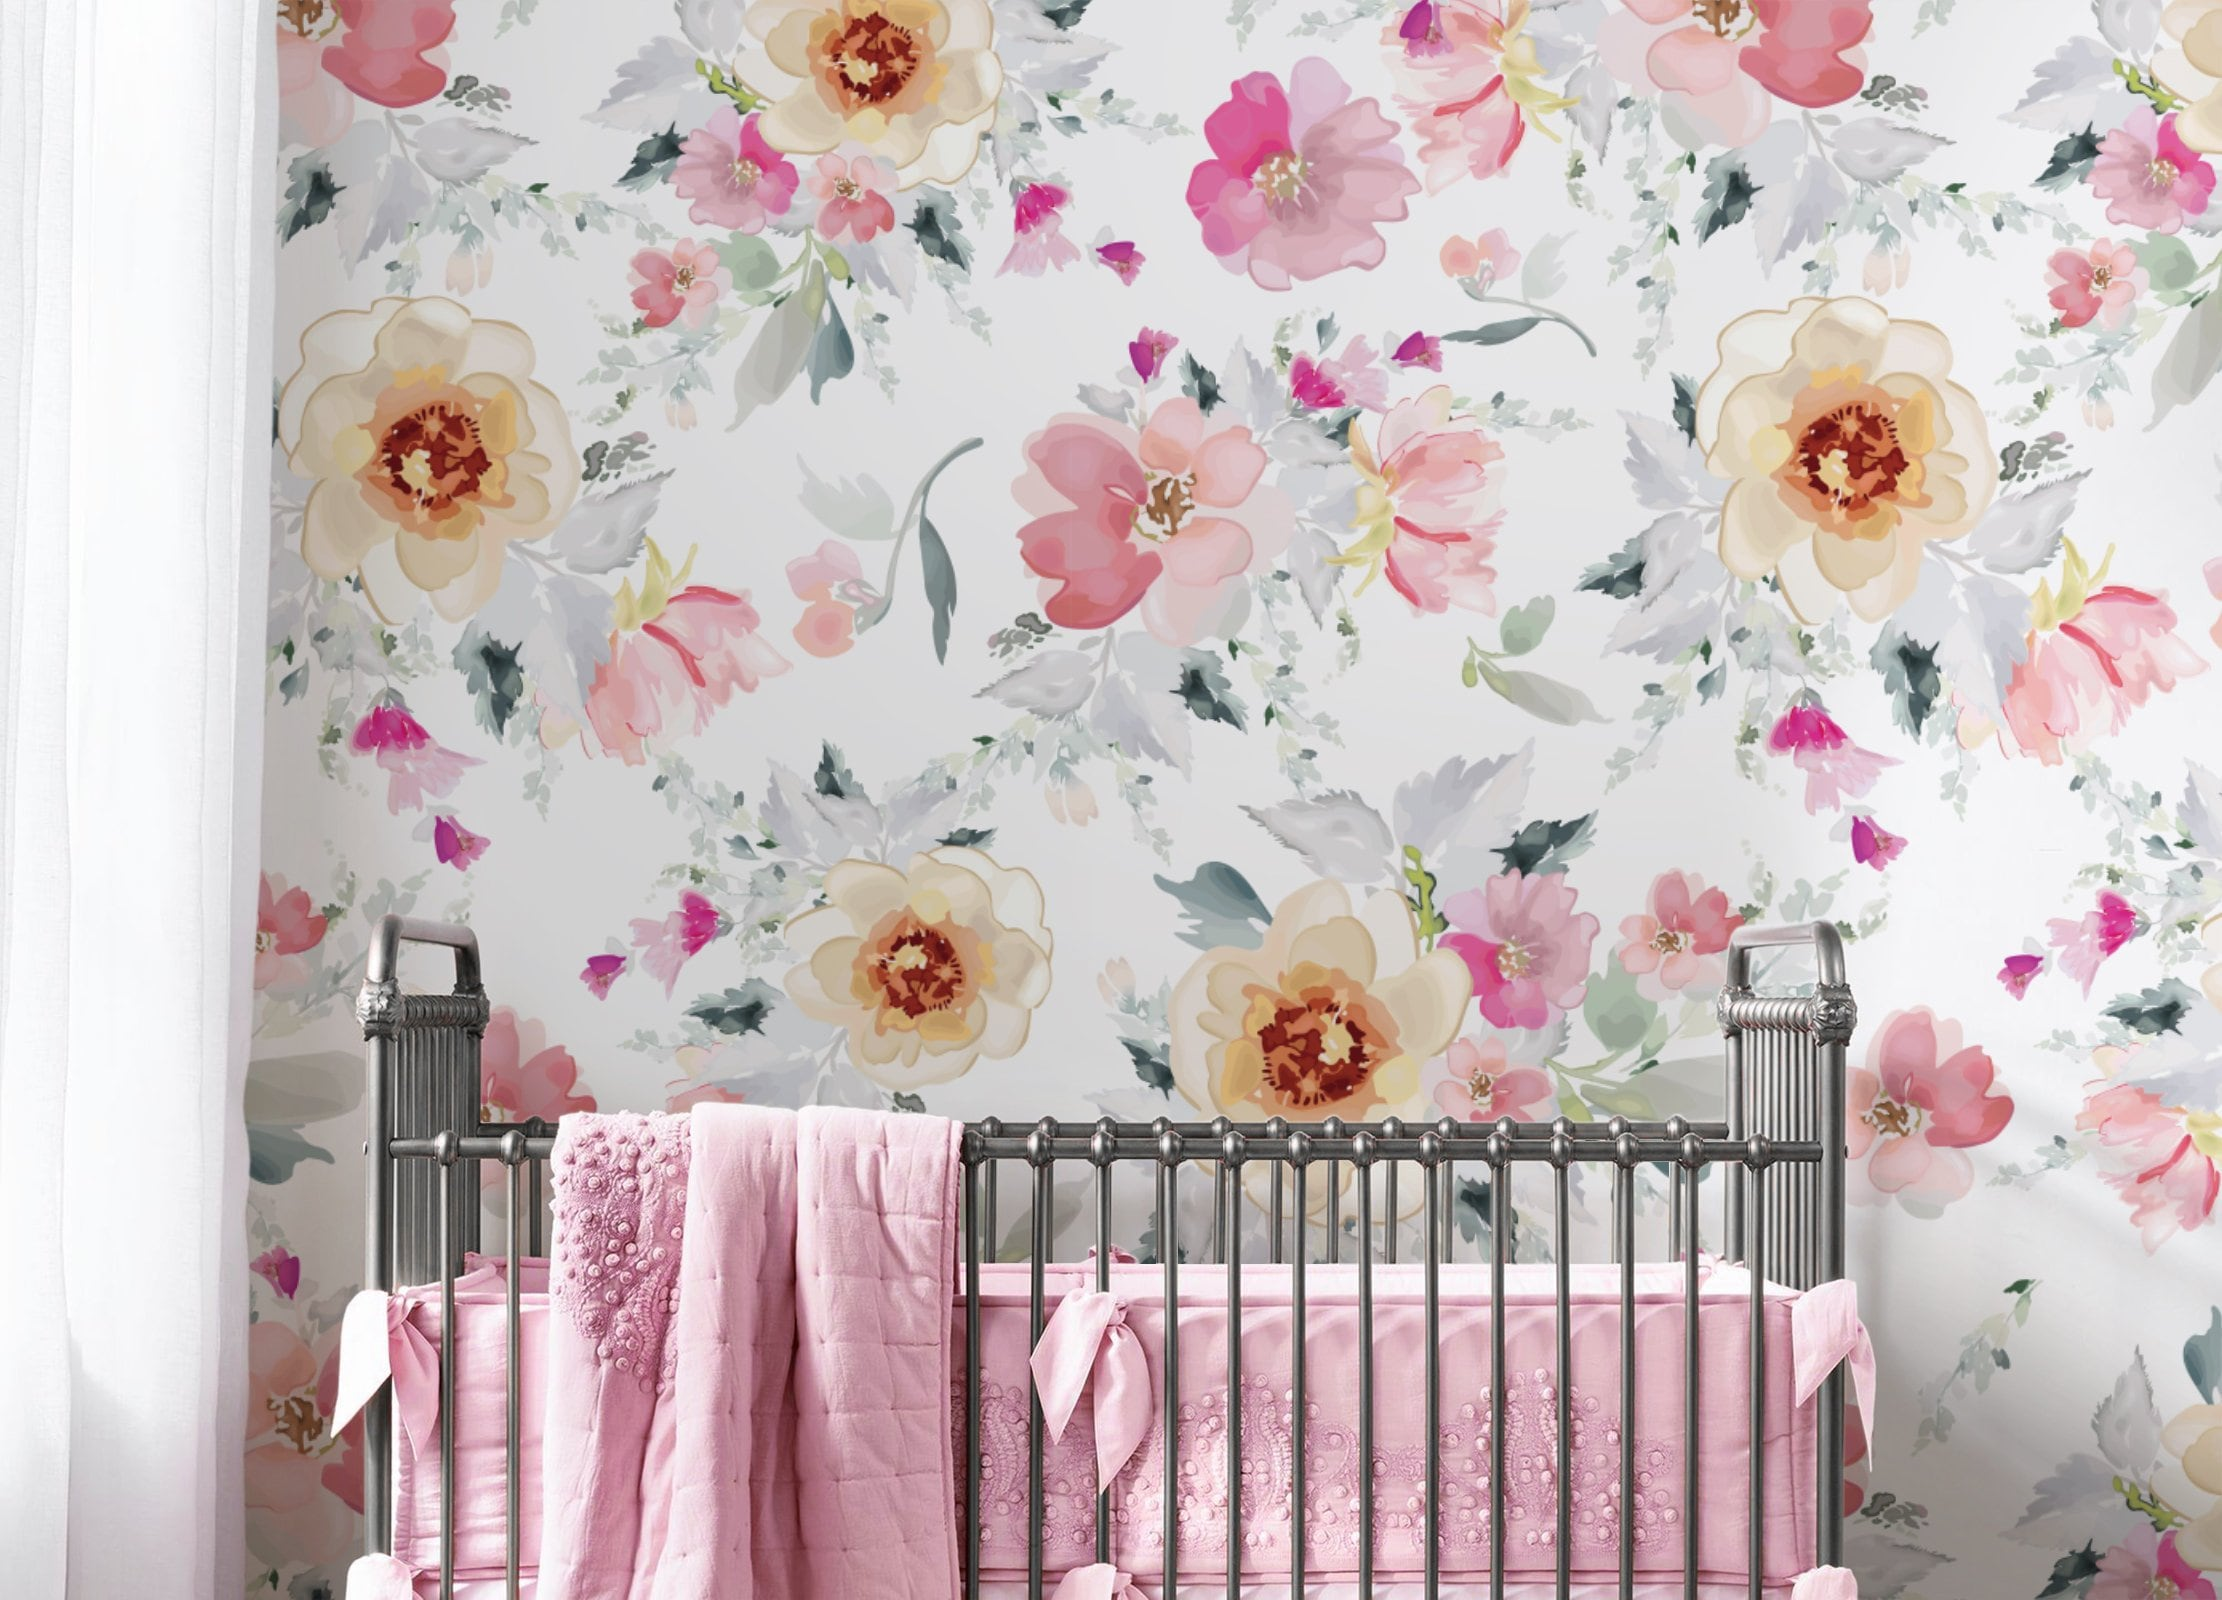 Floral Repositionable Removable Wallpaper Peel And Stick Etsy